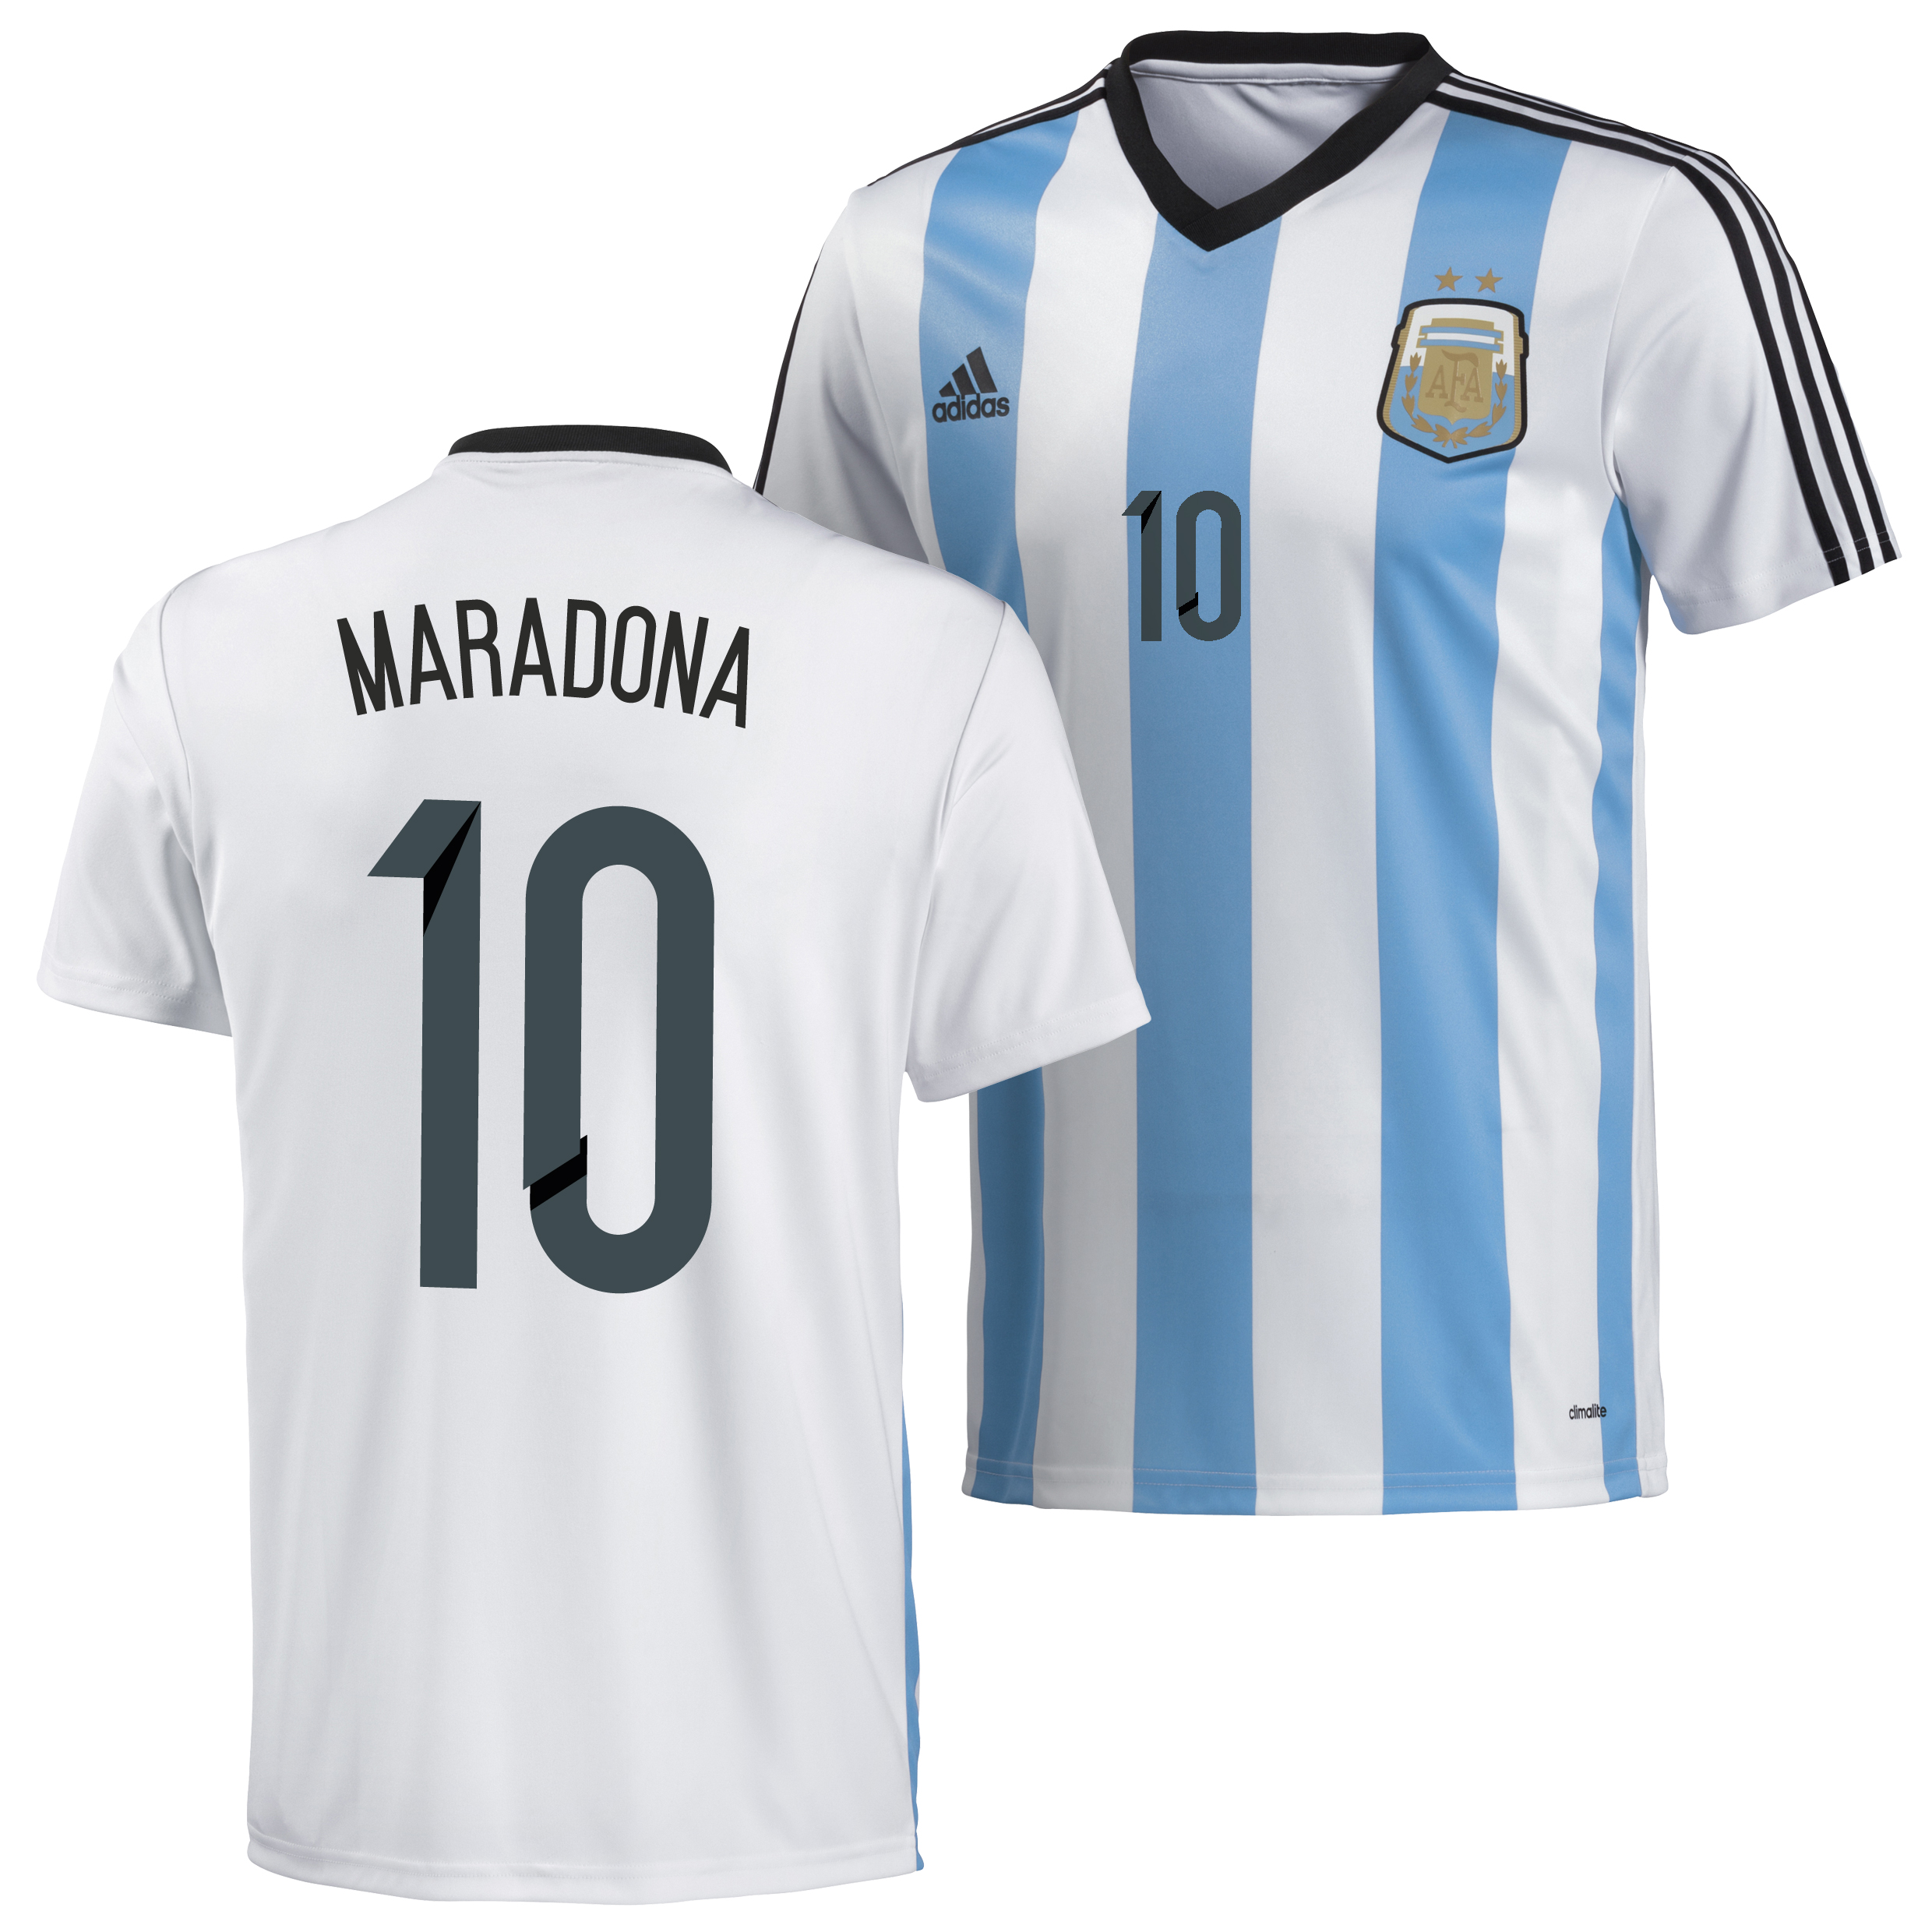 Argentina Home Replica T-Shirt 2013/14 with Maradona 10 printing